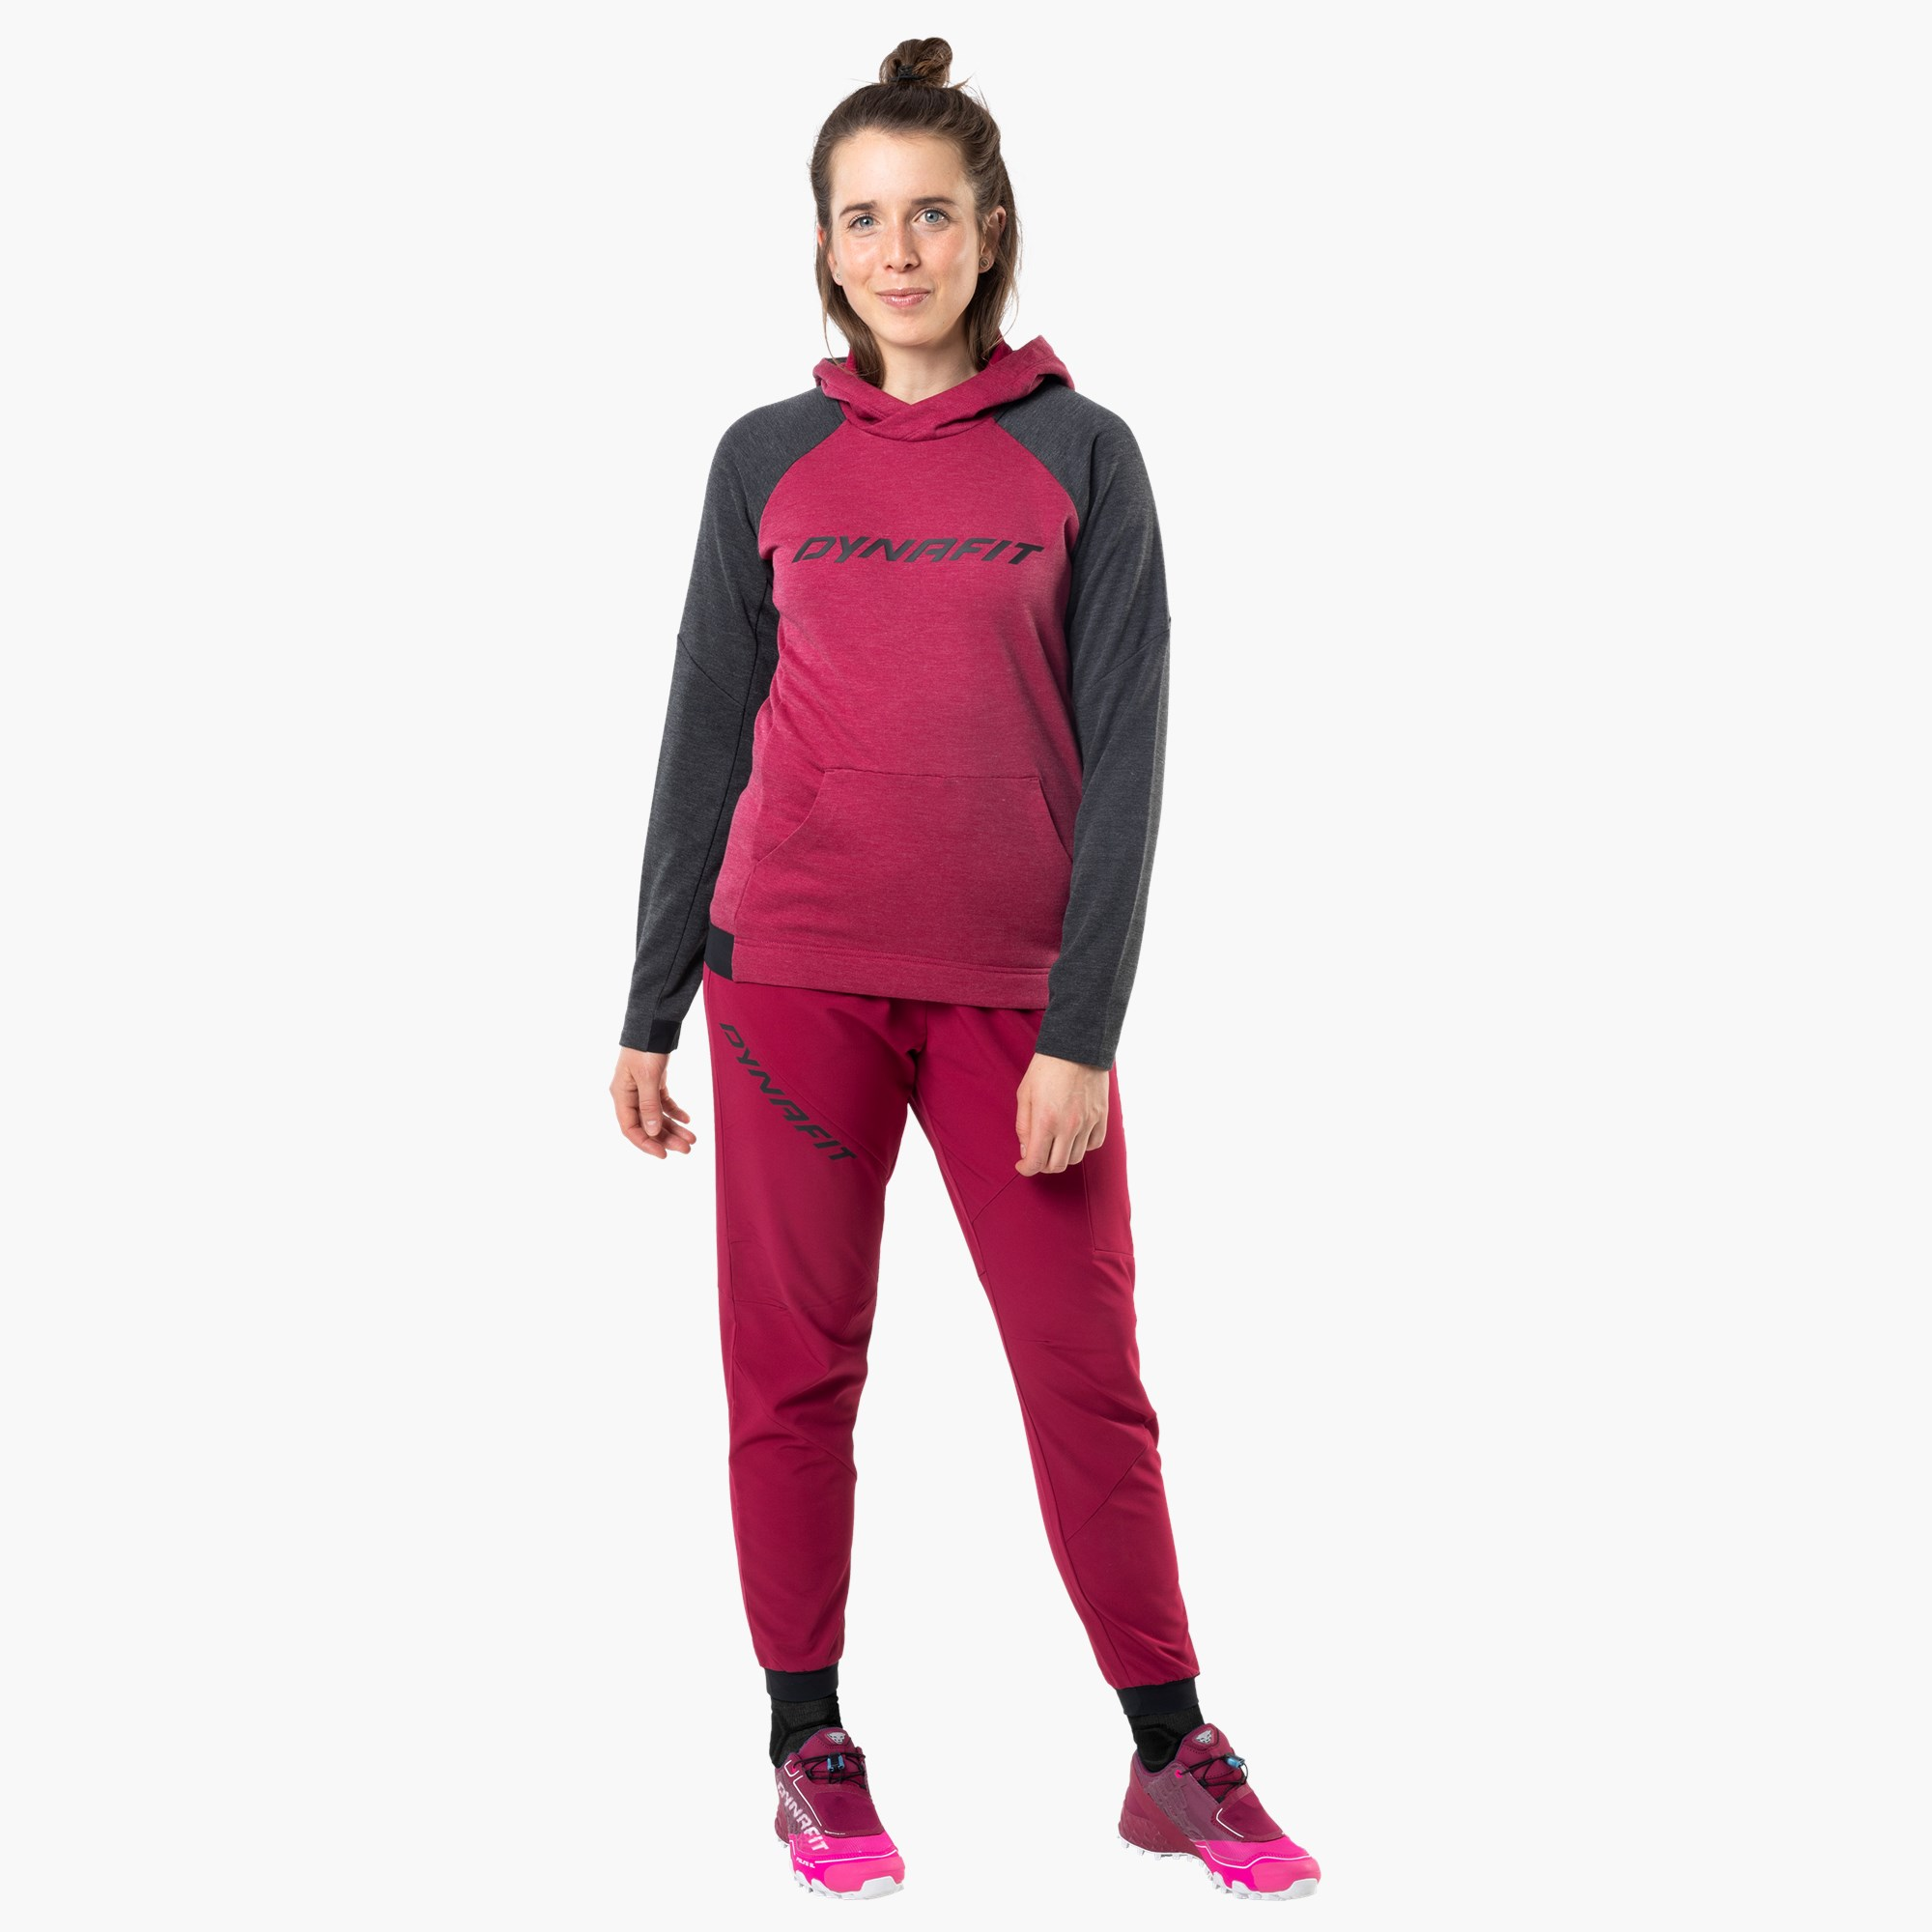 Beet red/0910_6211